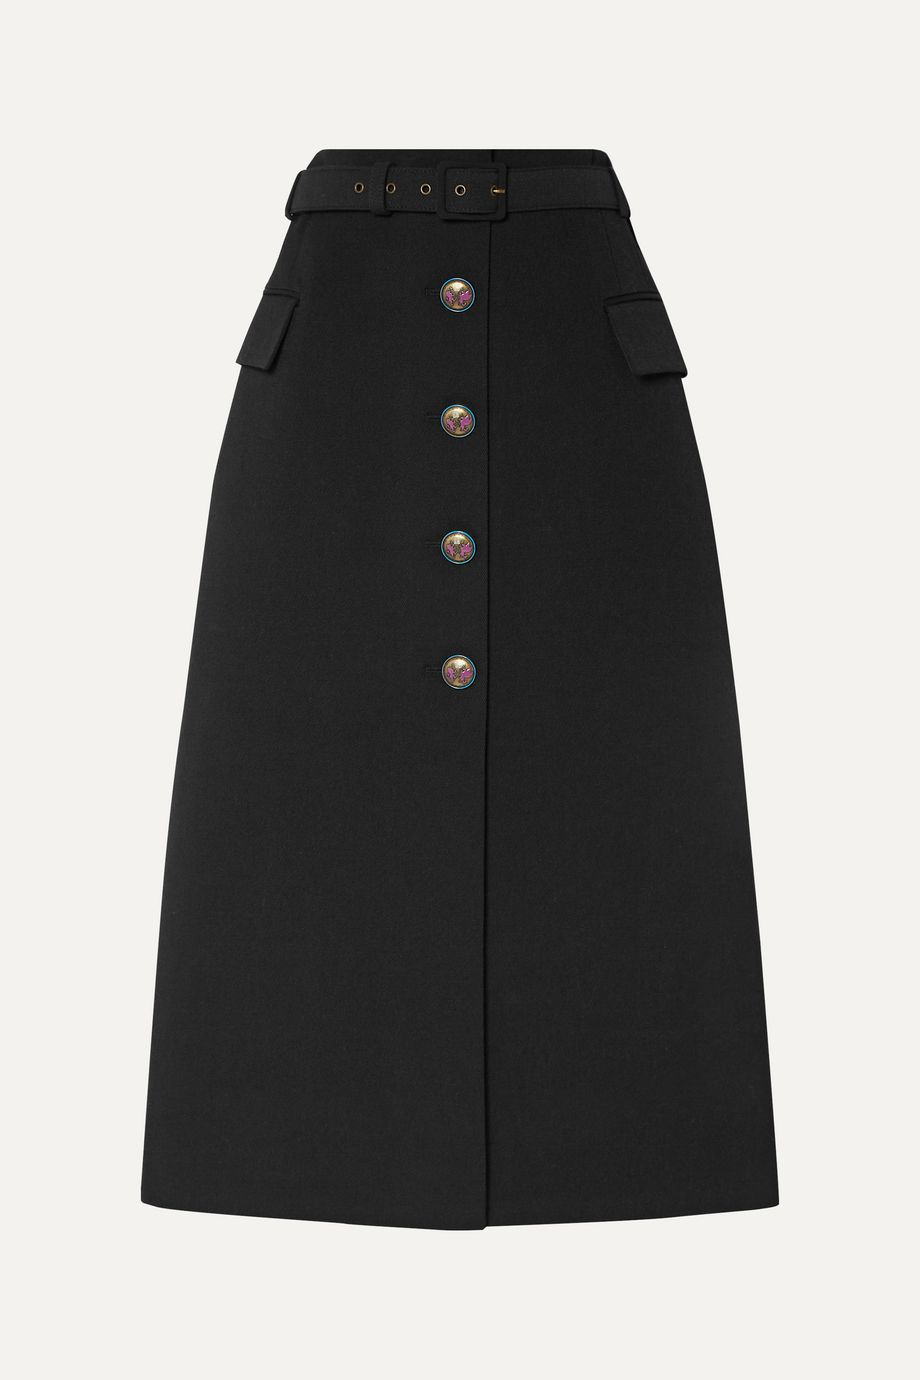 Givenchy Belted wool-blend twill midi skirt